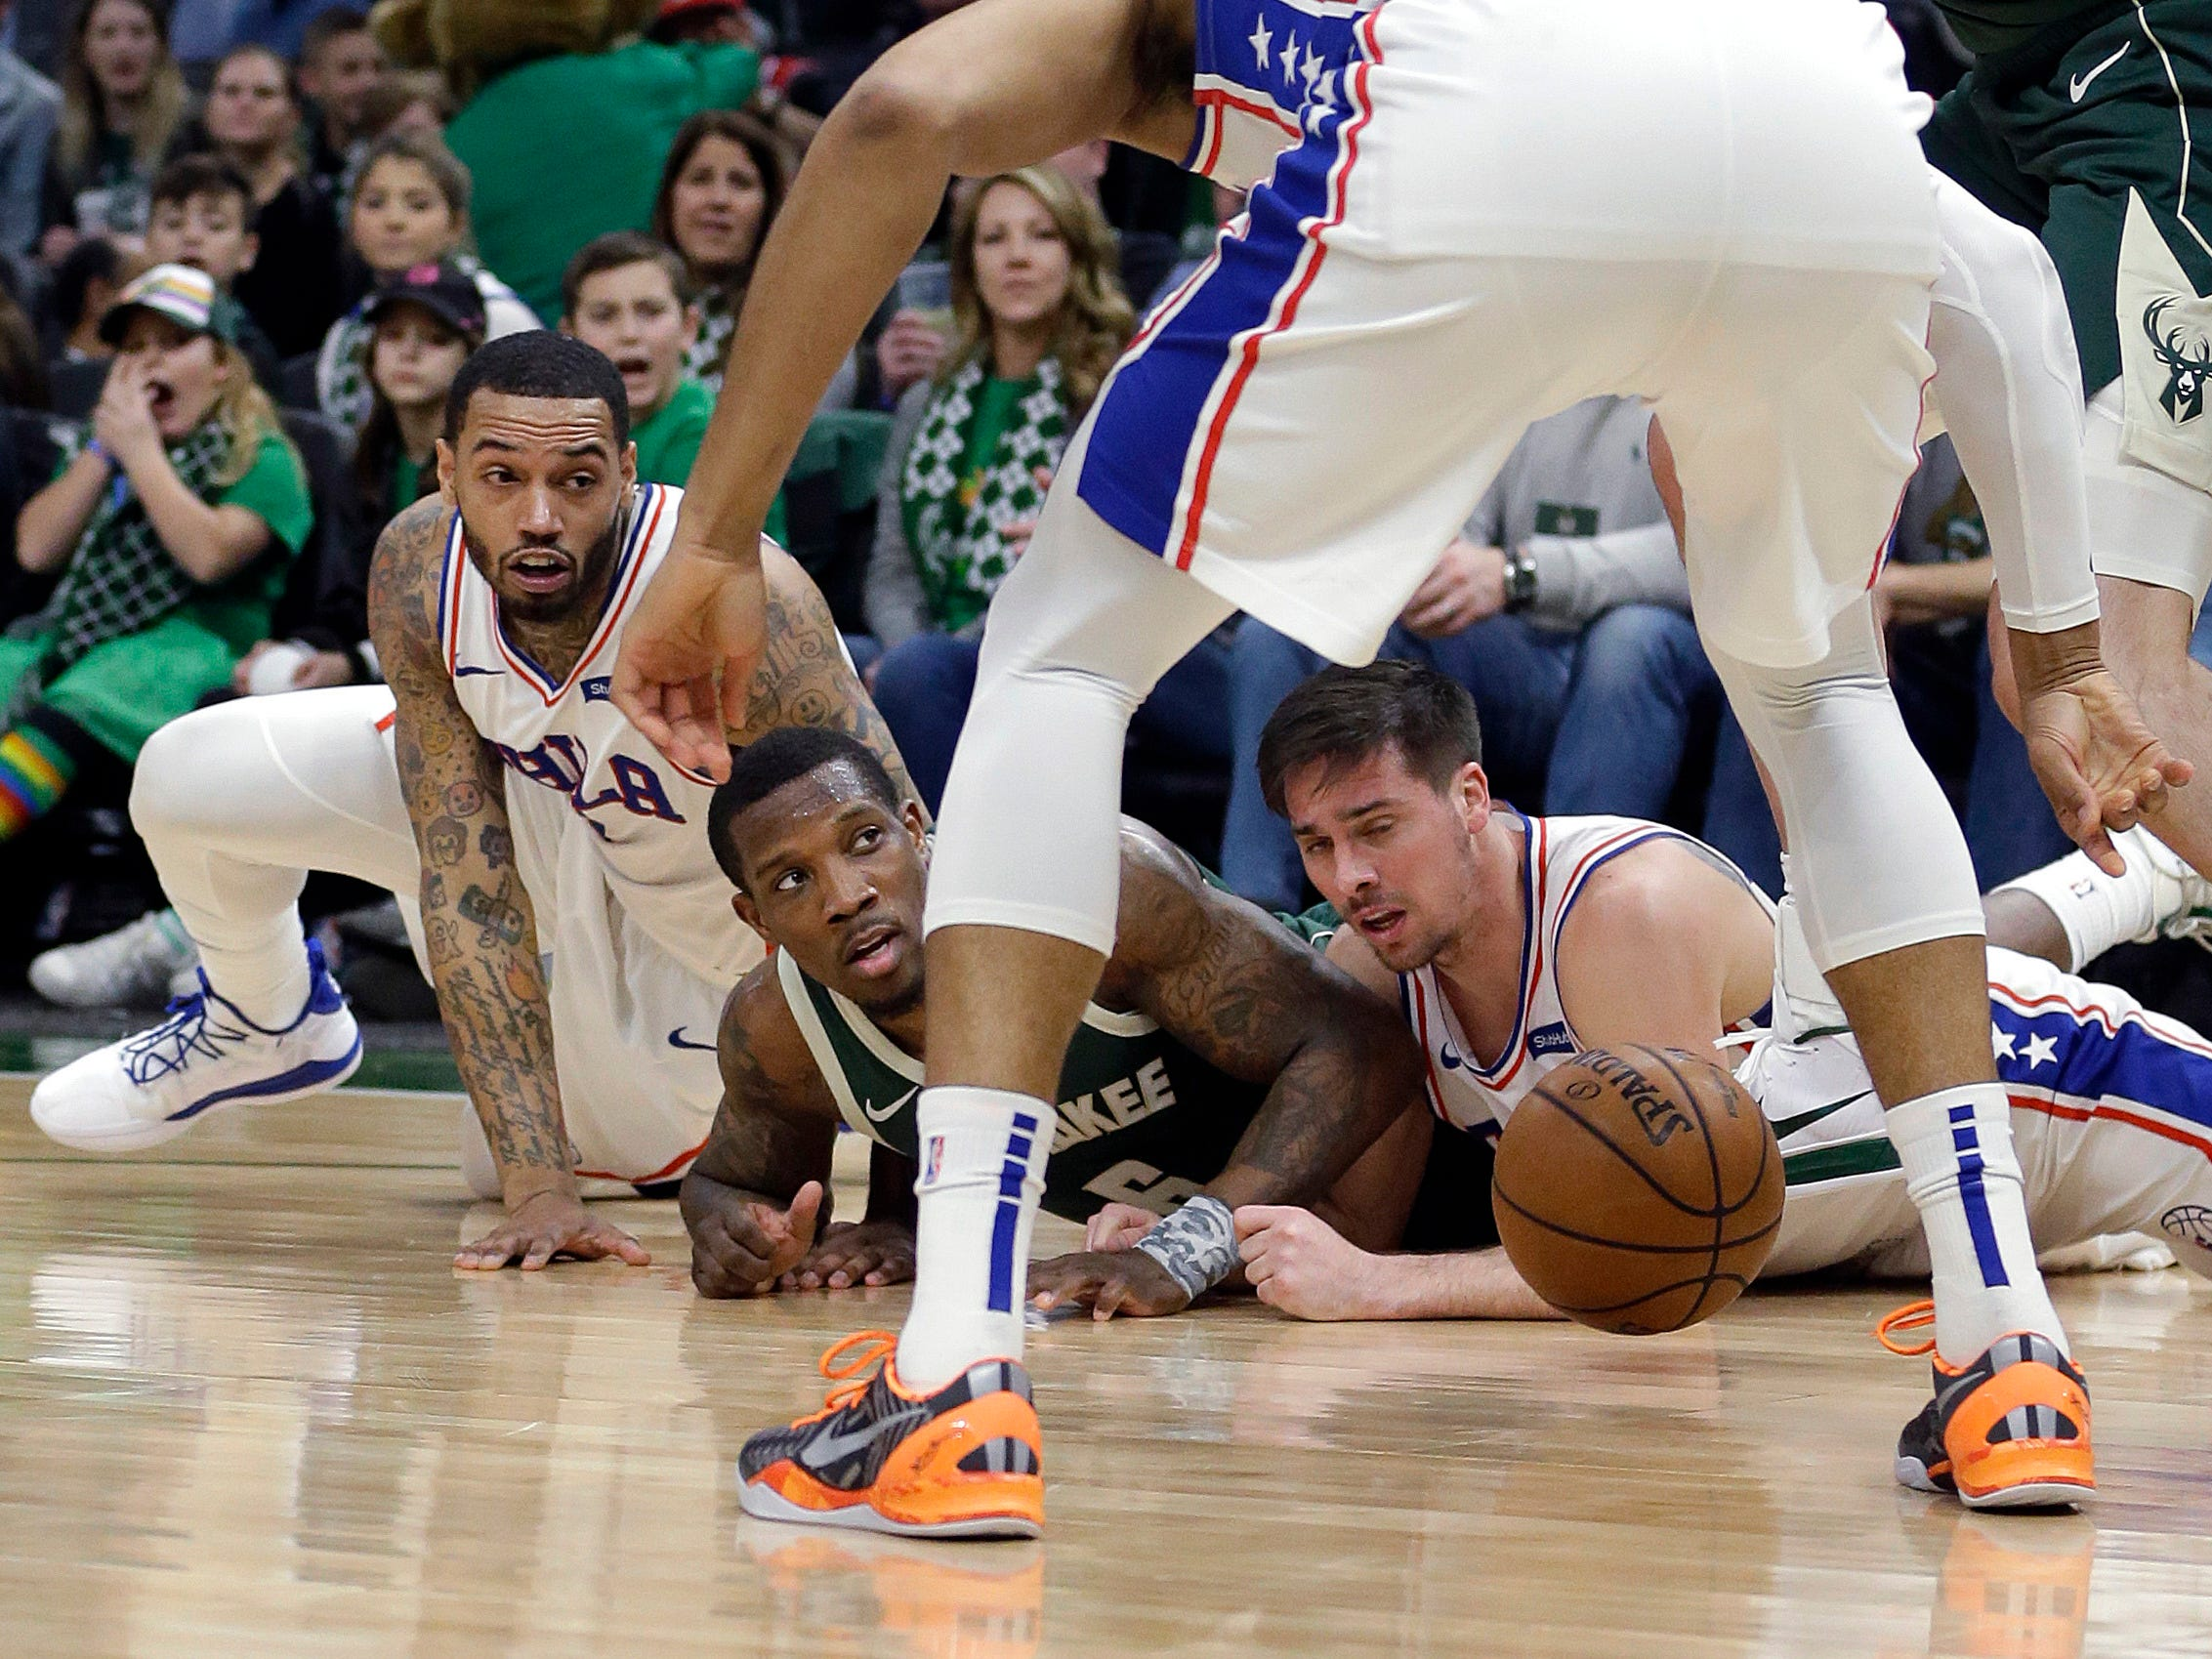 Bucks guards Eric Bledsoe goes to the floor along with Mike Scott (left) and T.J. McConnell of the 76ers in a scramble for a loose ball during the first half Sunday.